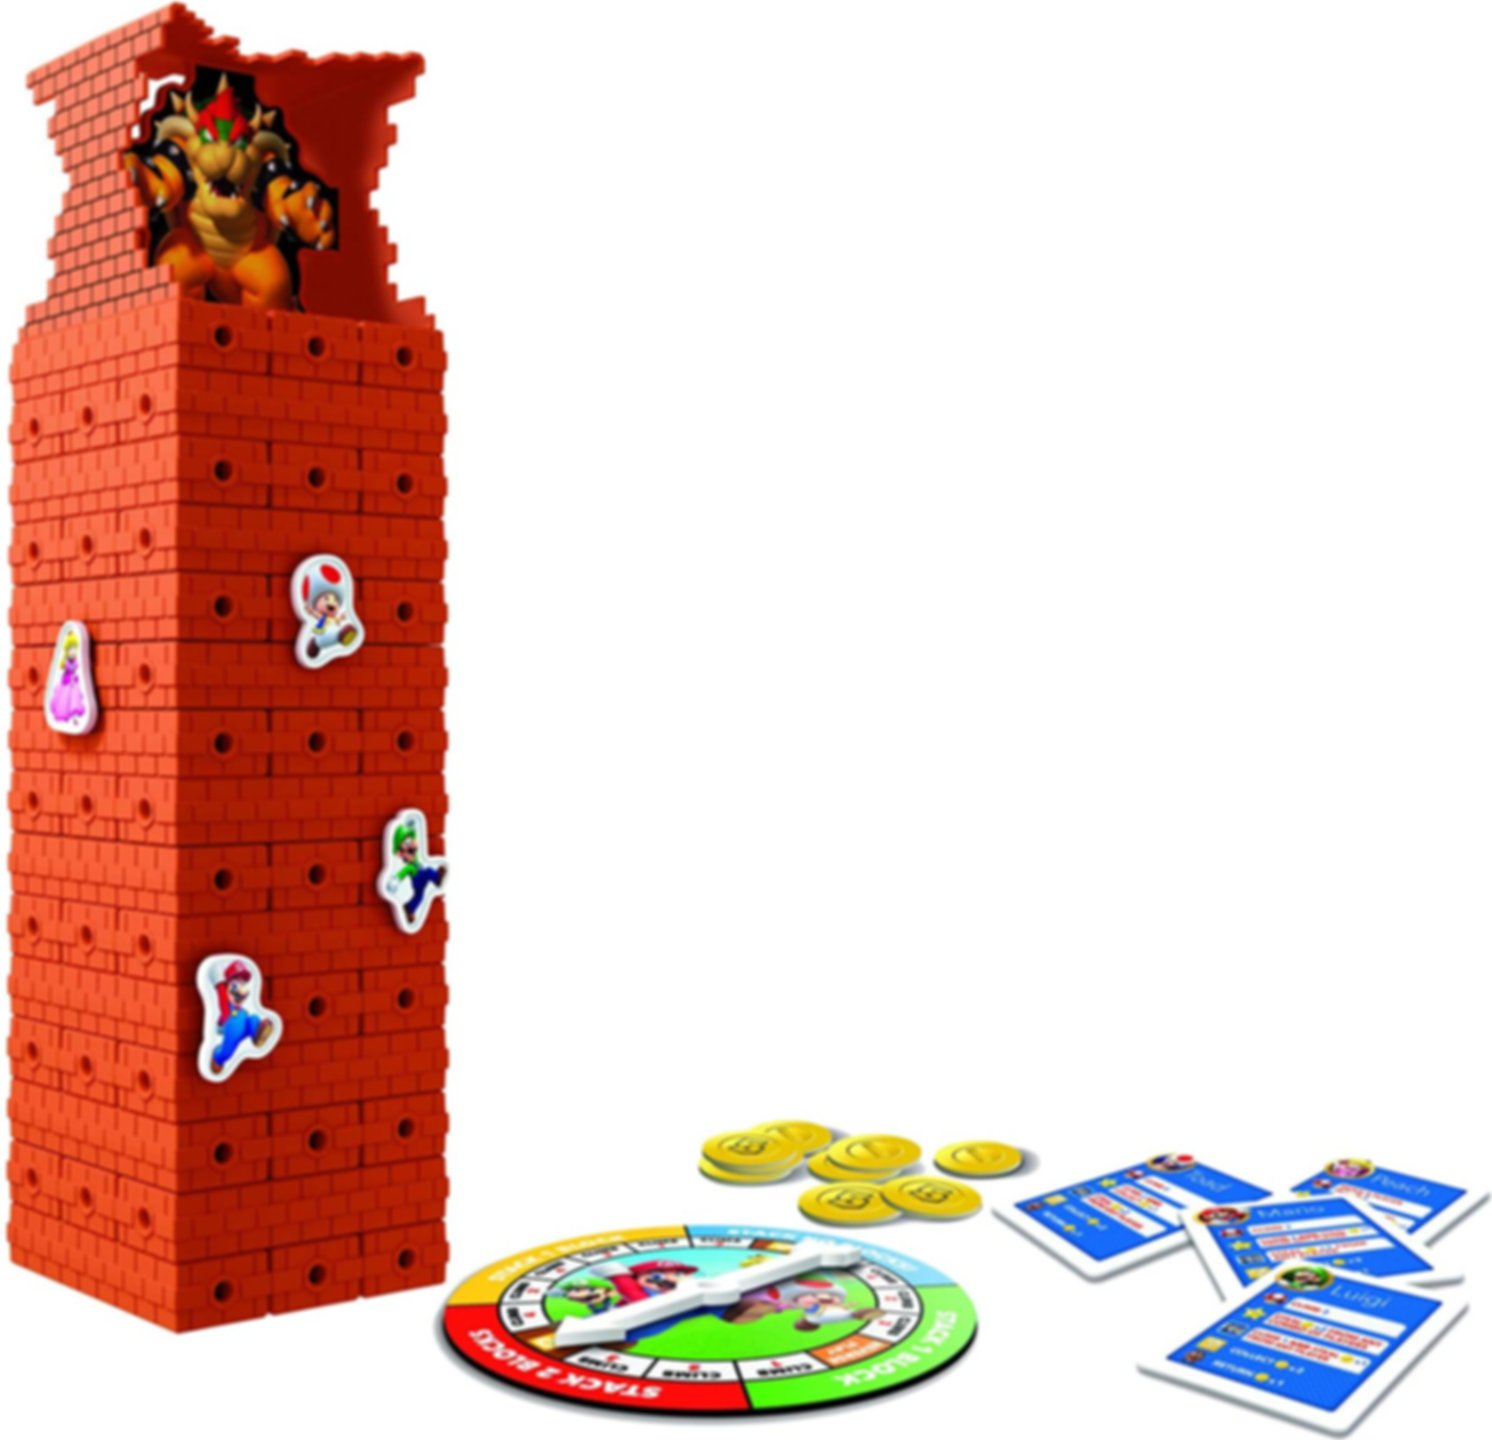 Jenga Super Mario Edition gameplay